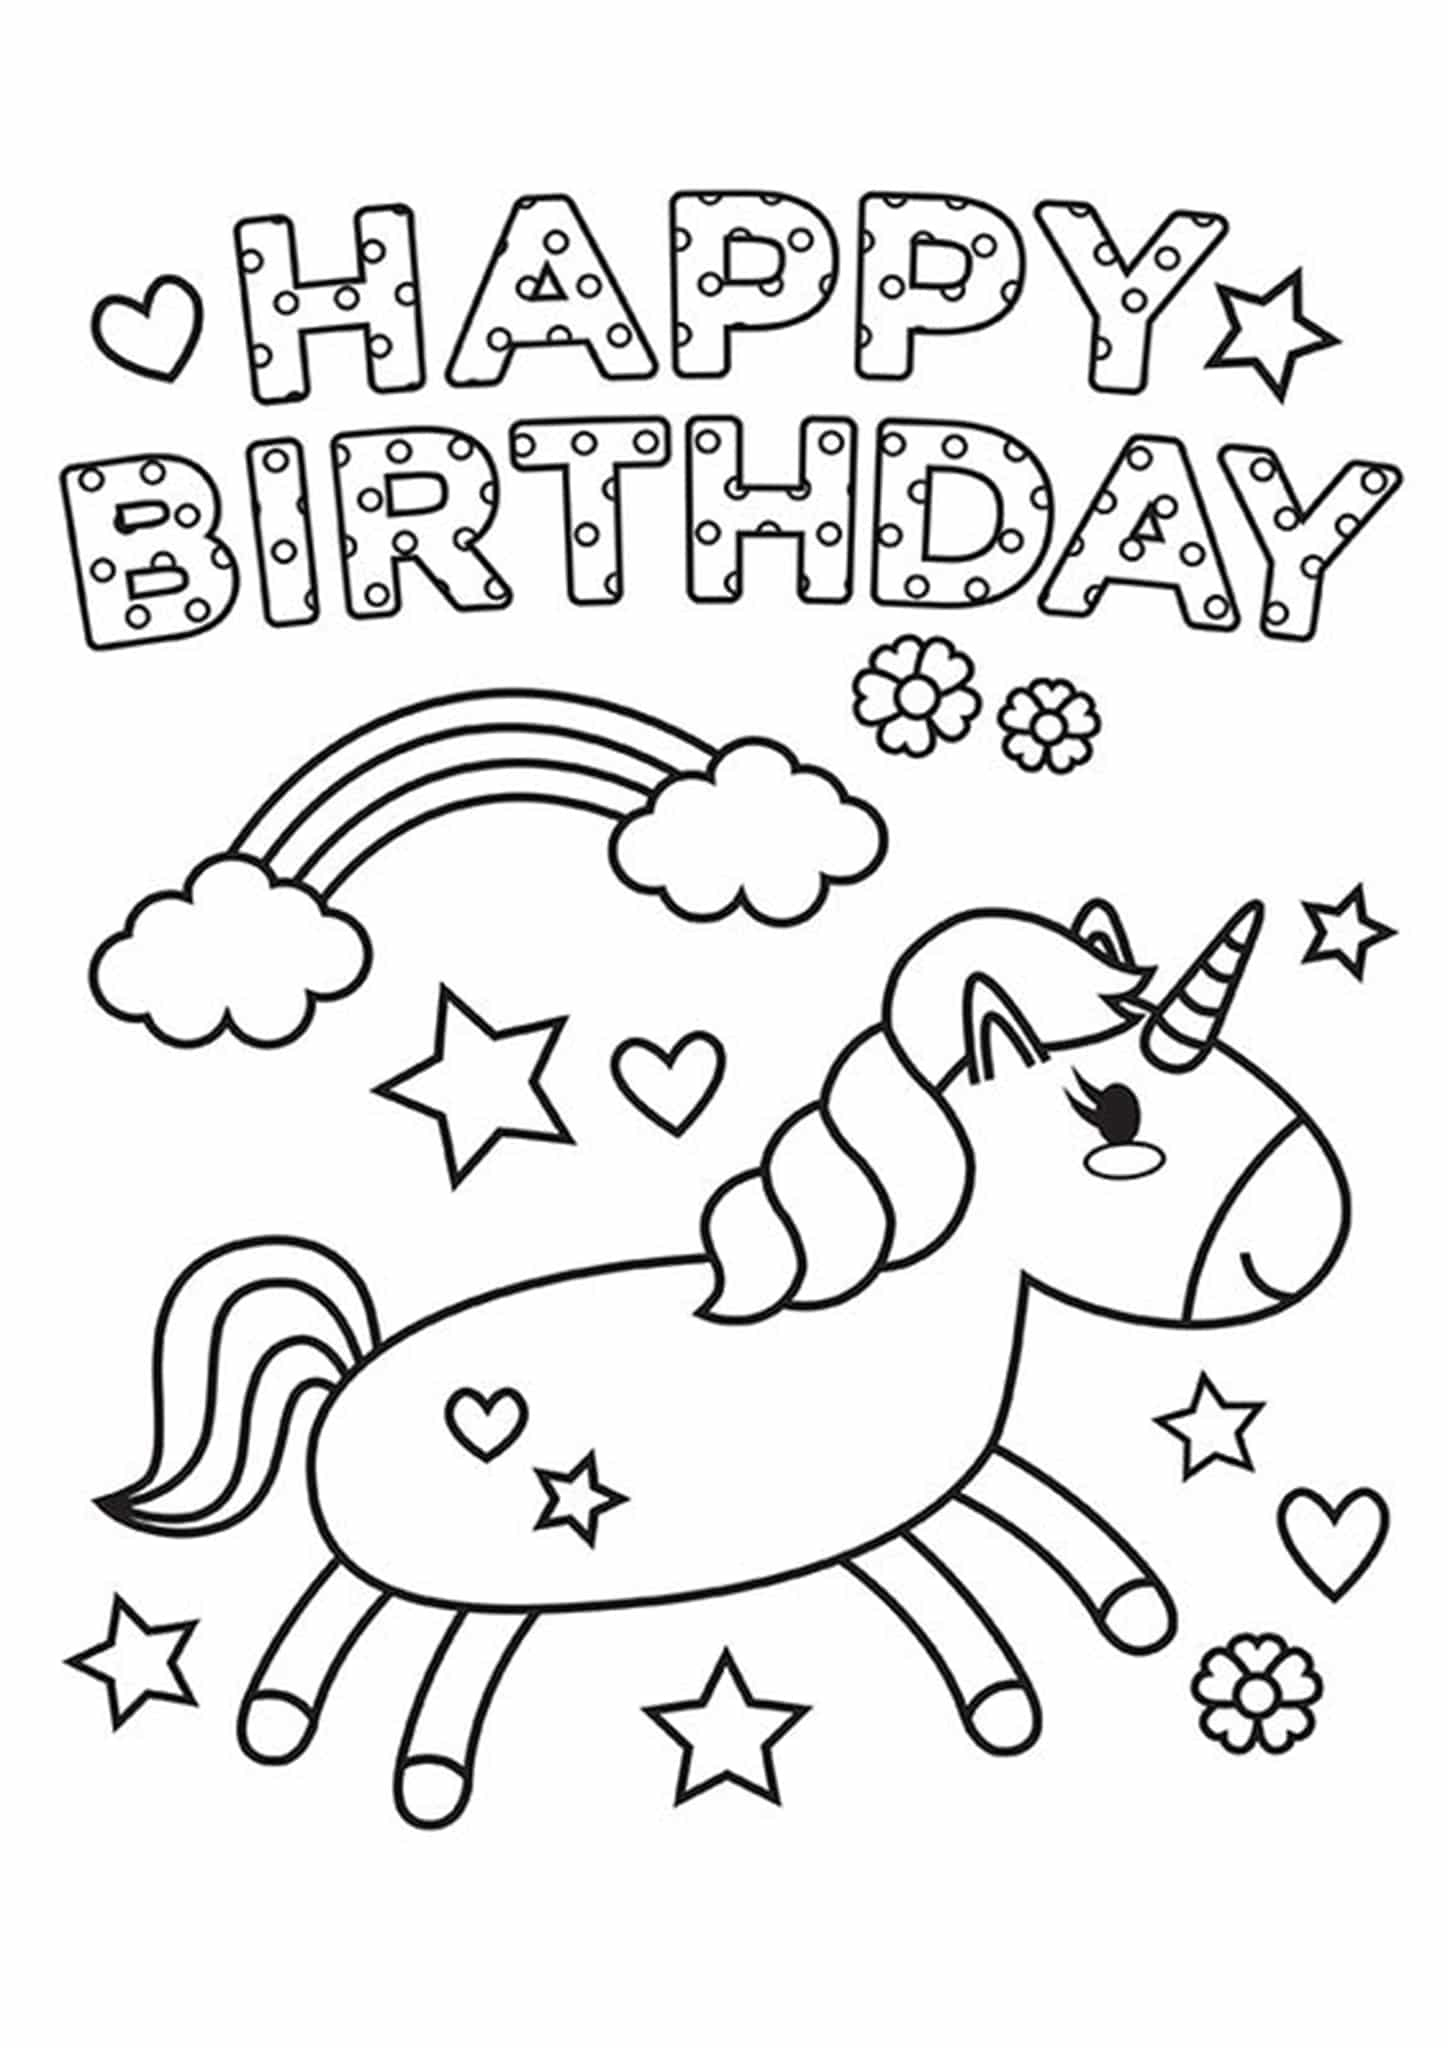 coloring printable birthday birthday cake coloring pages to download and print for free printable coloring birthday